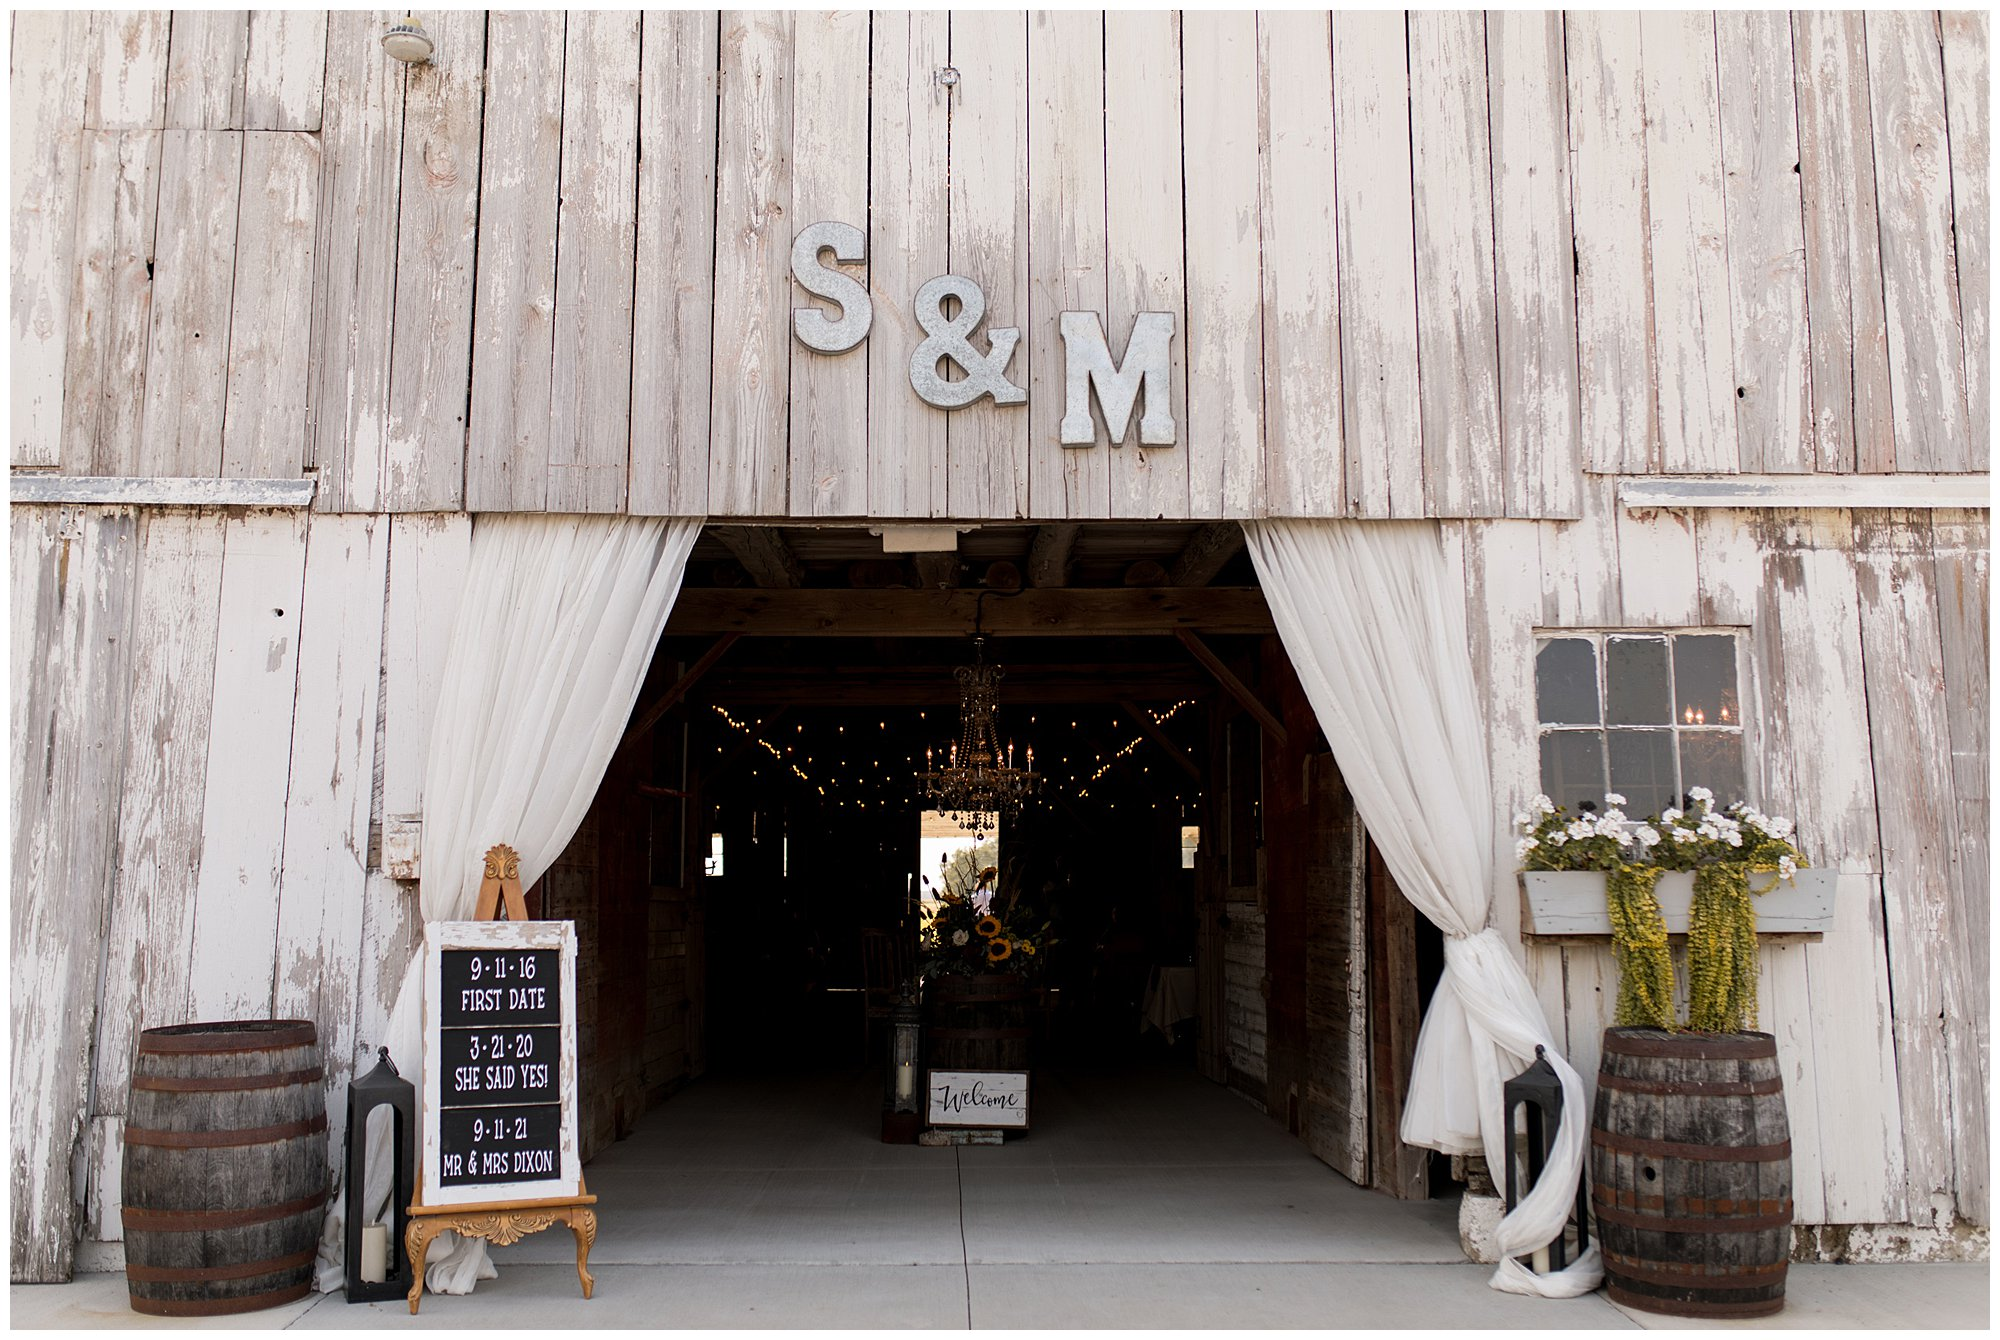 entrance to The Barn on Boundary in Eaton, Indiana